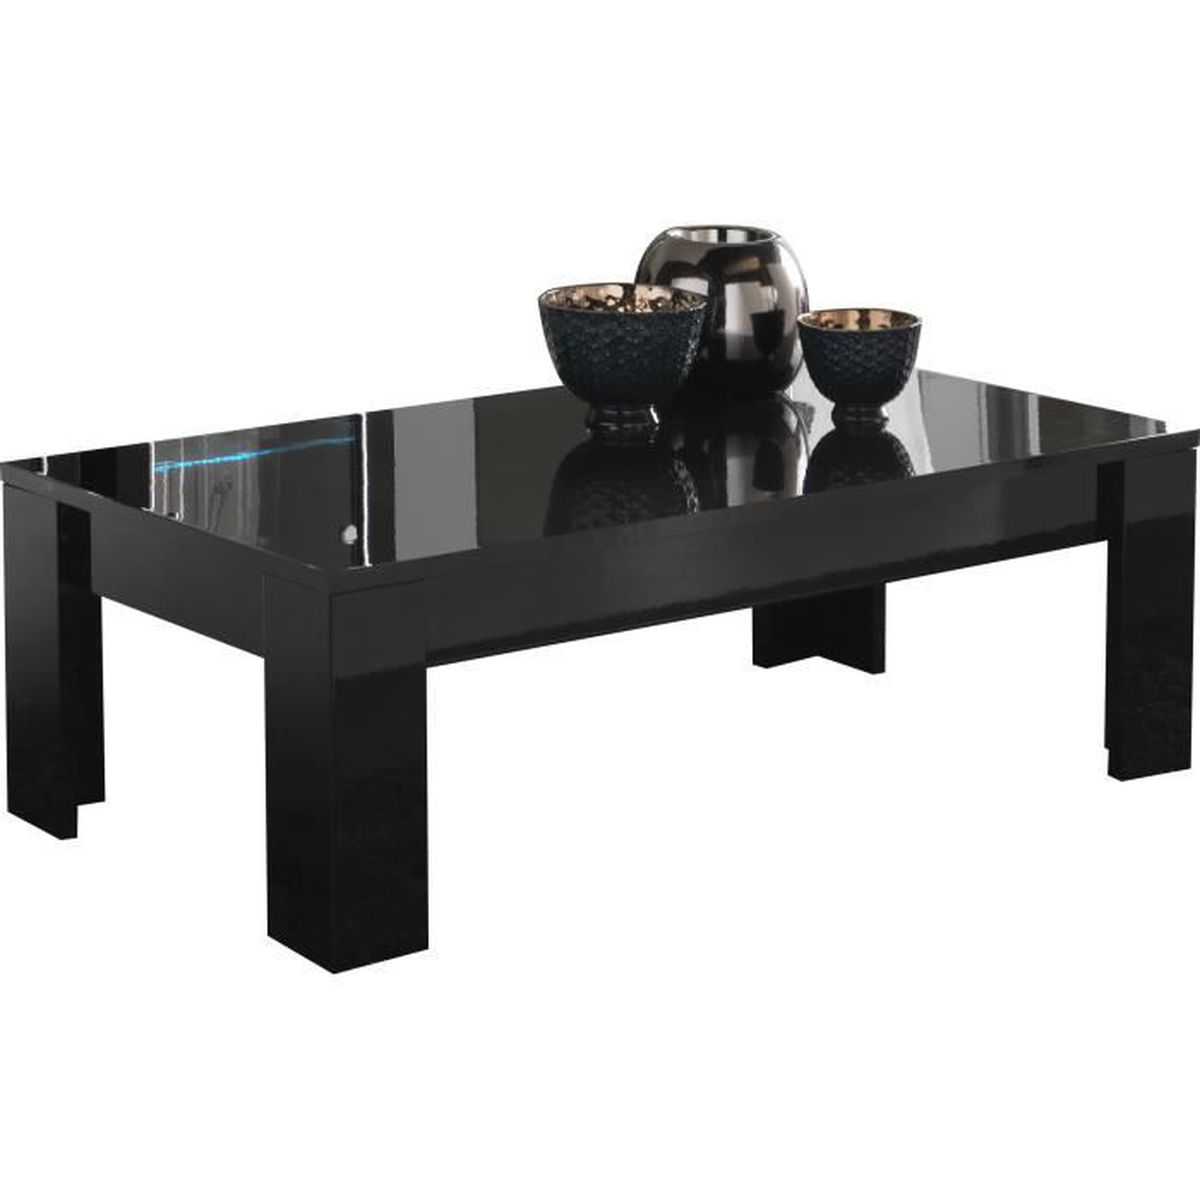 table basse rectangulaire coloris noir laqu brillant noir. Black Bedroom Furniture Sets. Home Design Ideas